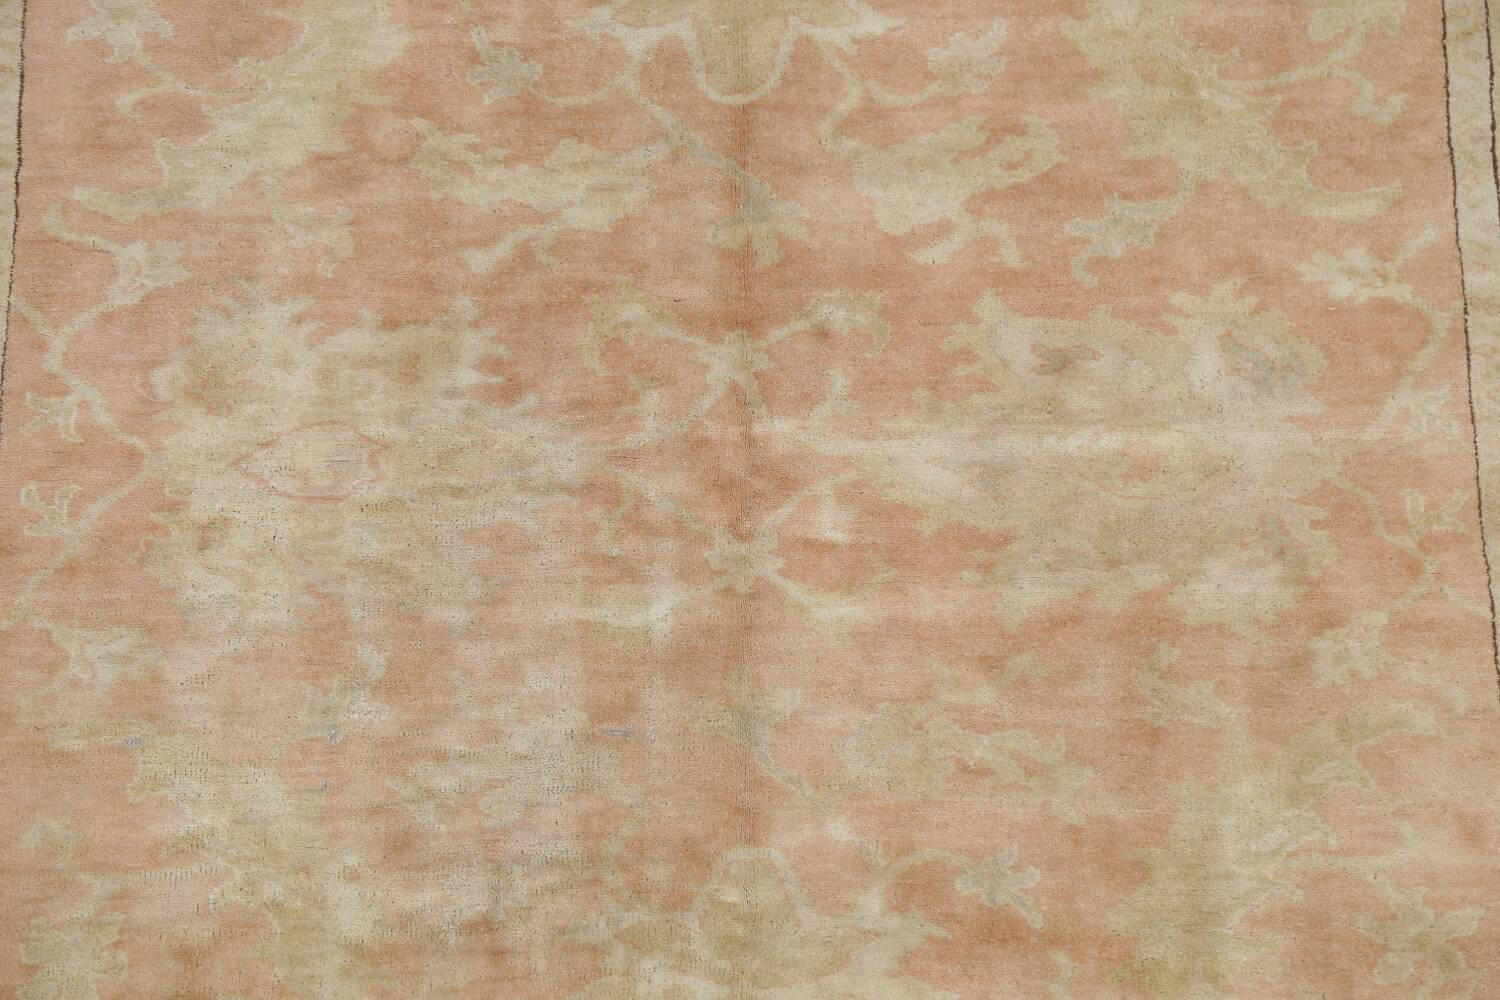 Vegetable Dye Antique Coral Peach Egyptian Area Rug 5x7 image 4